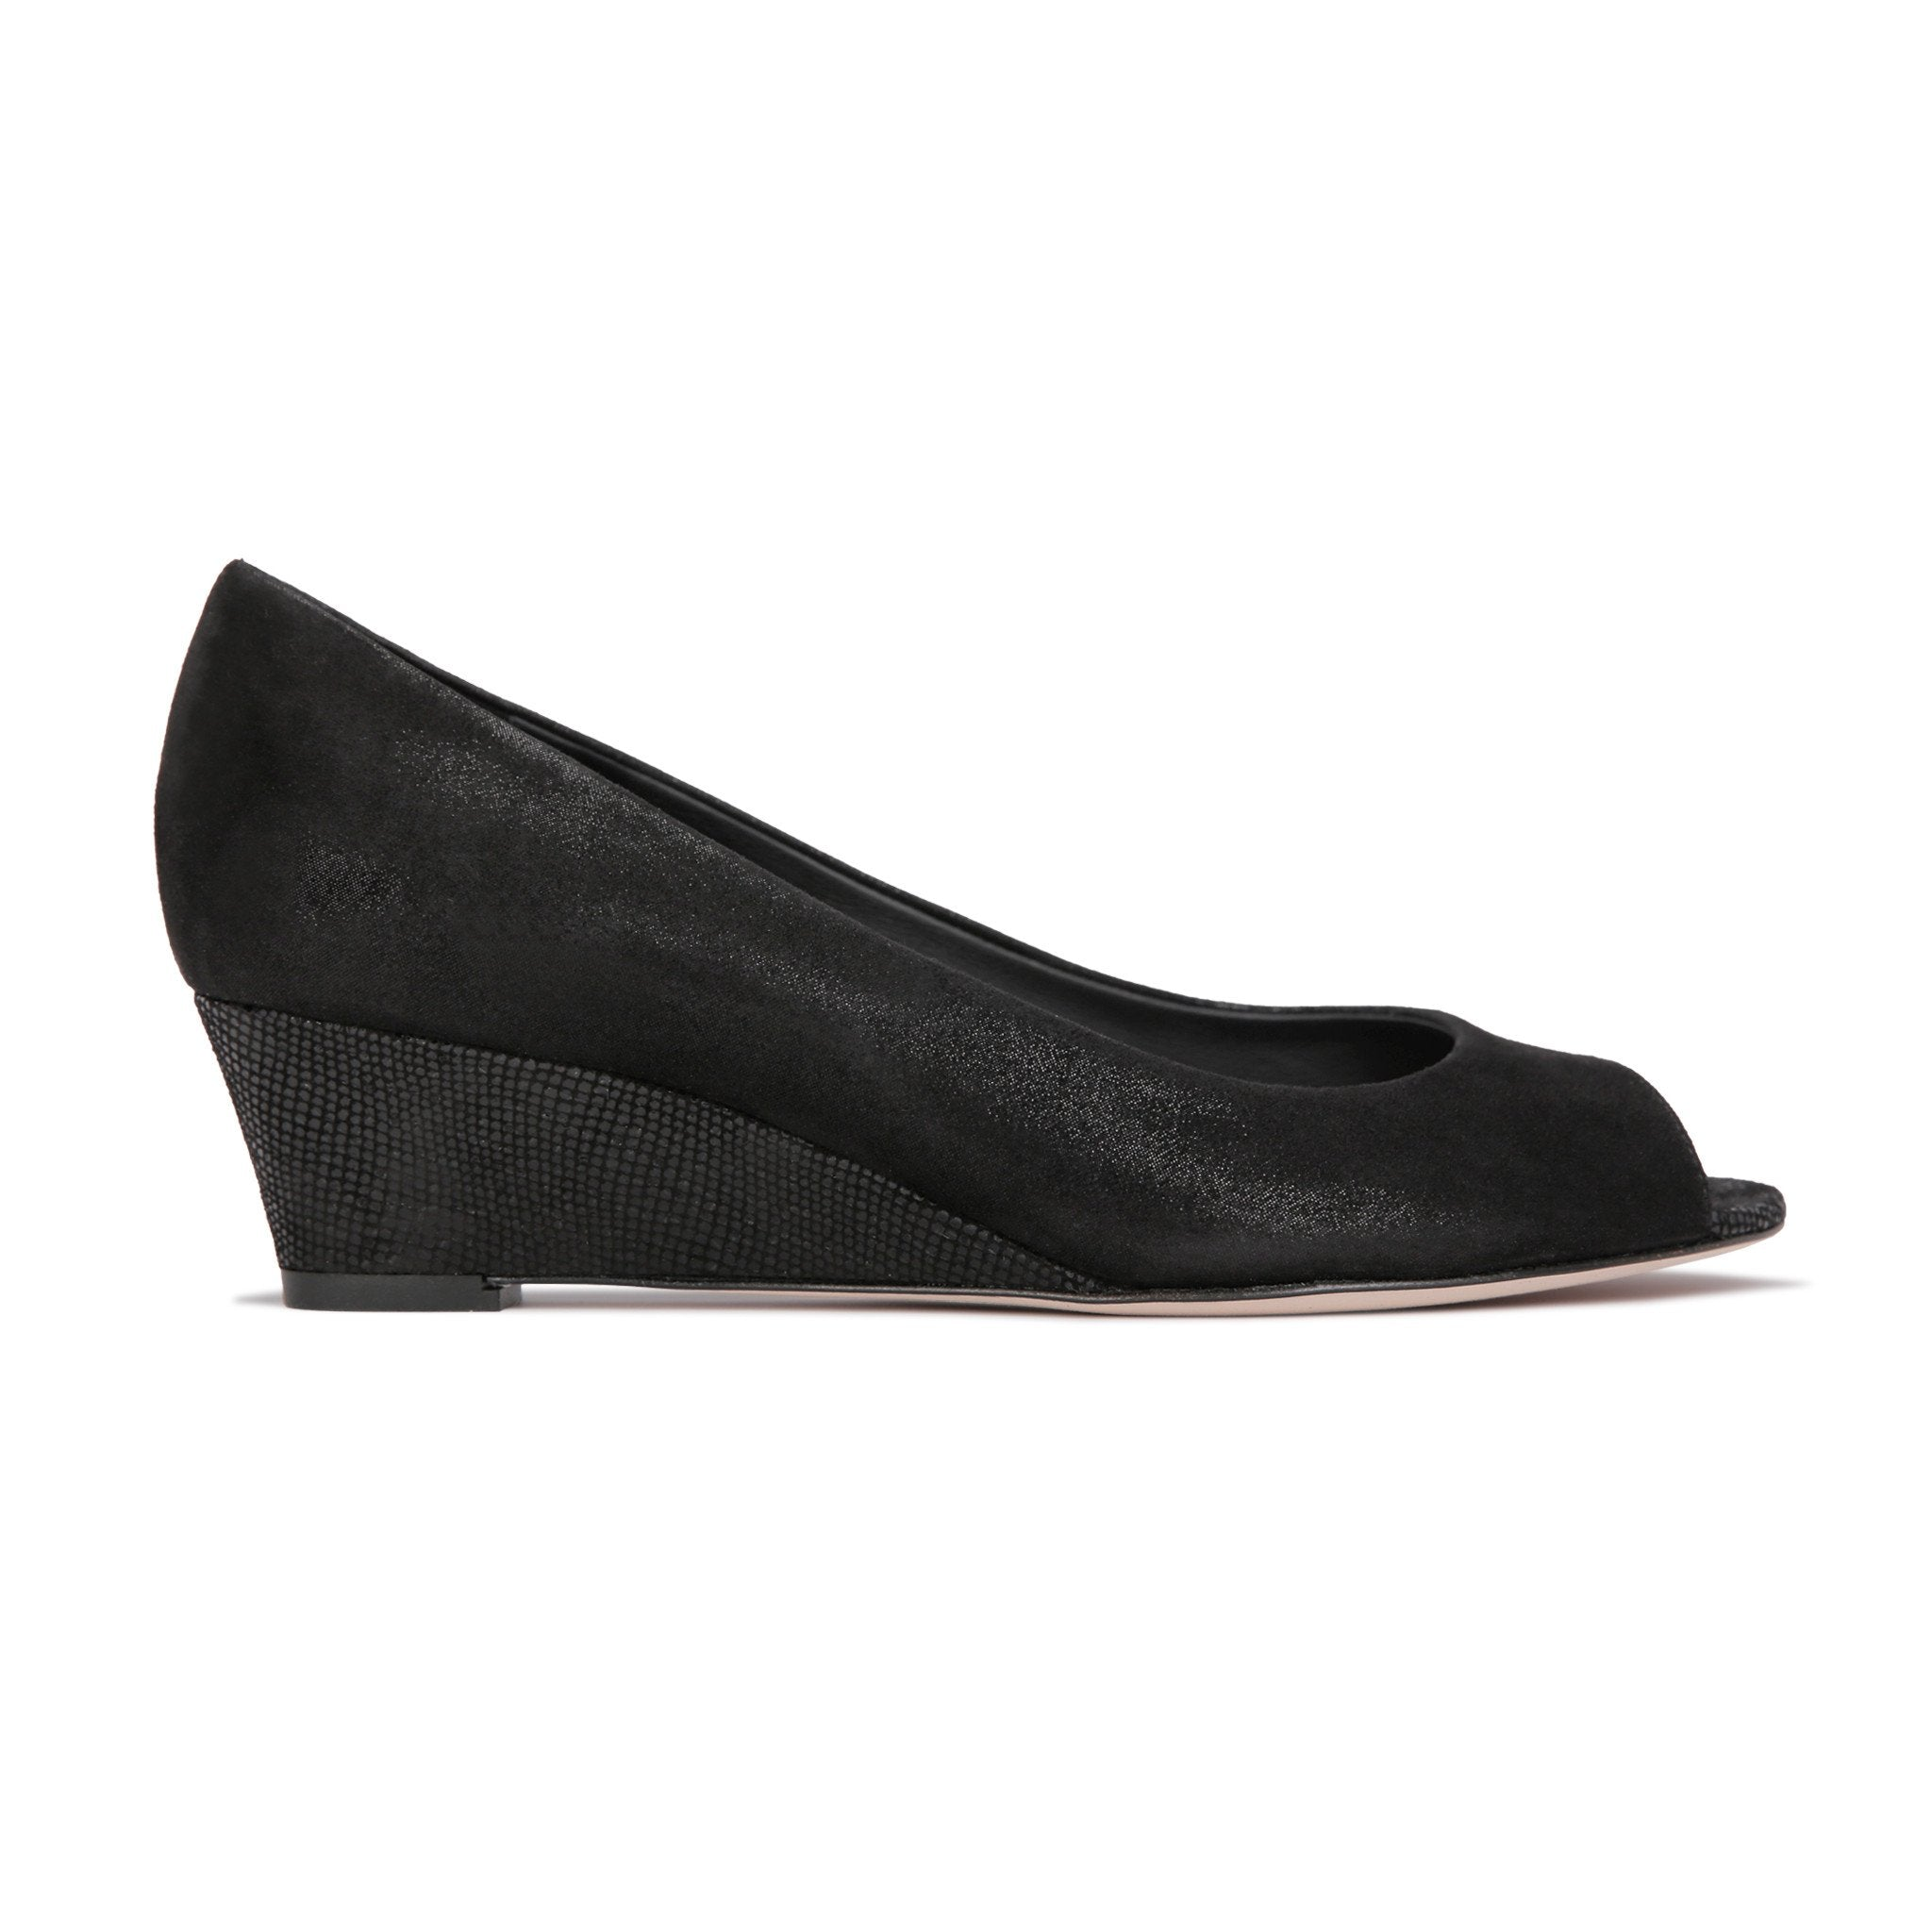 SARDINIA - Hydra Nero + Karung, VIAJIYU - Women's Hand Made Sustainable Luxury Shoes. Made in Italy. Made to Order.